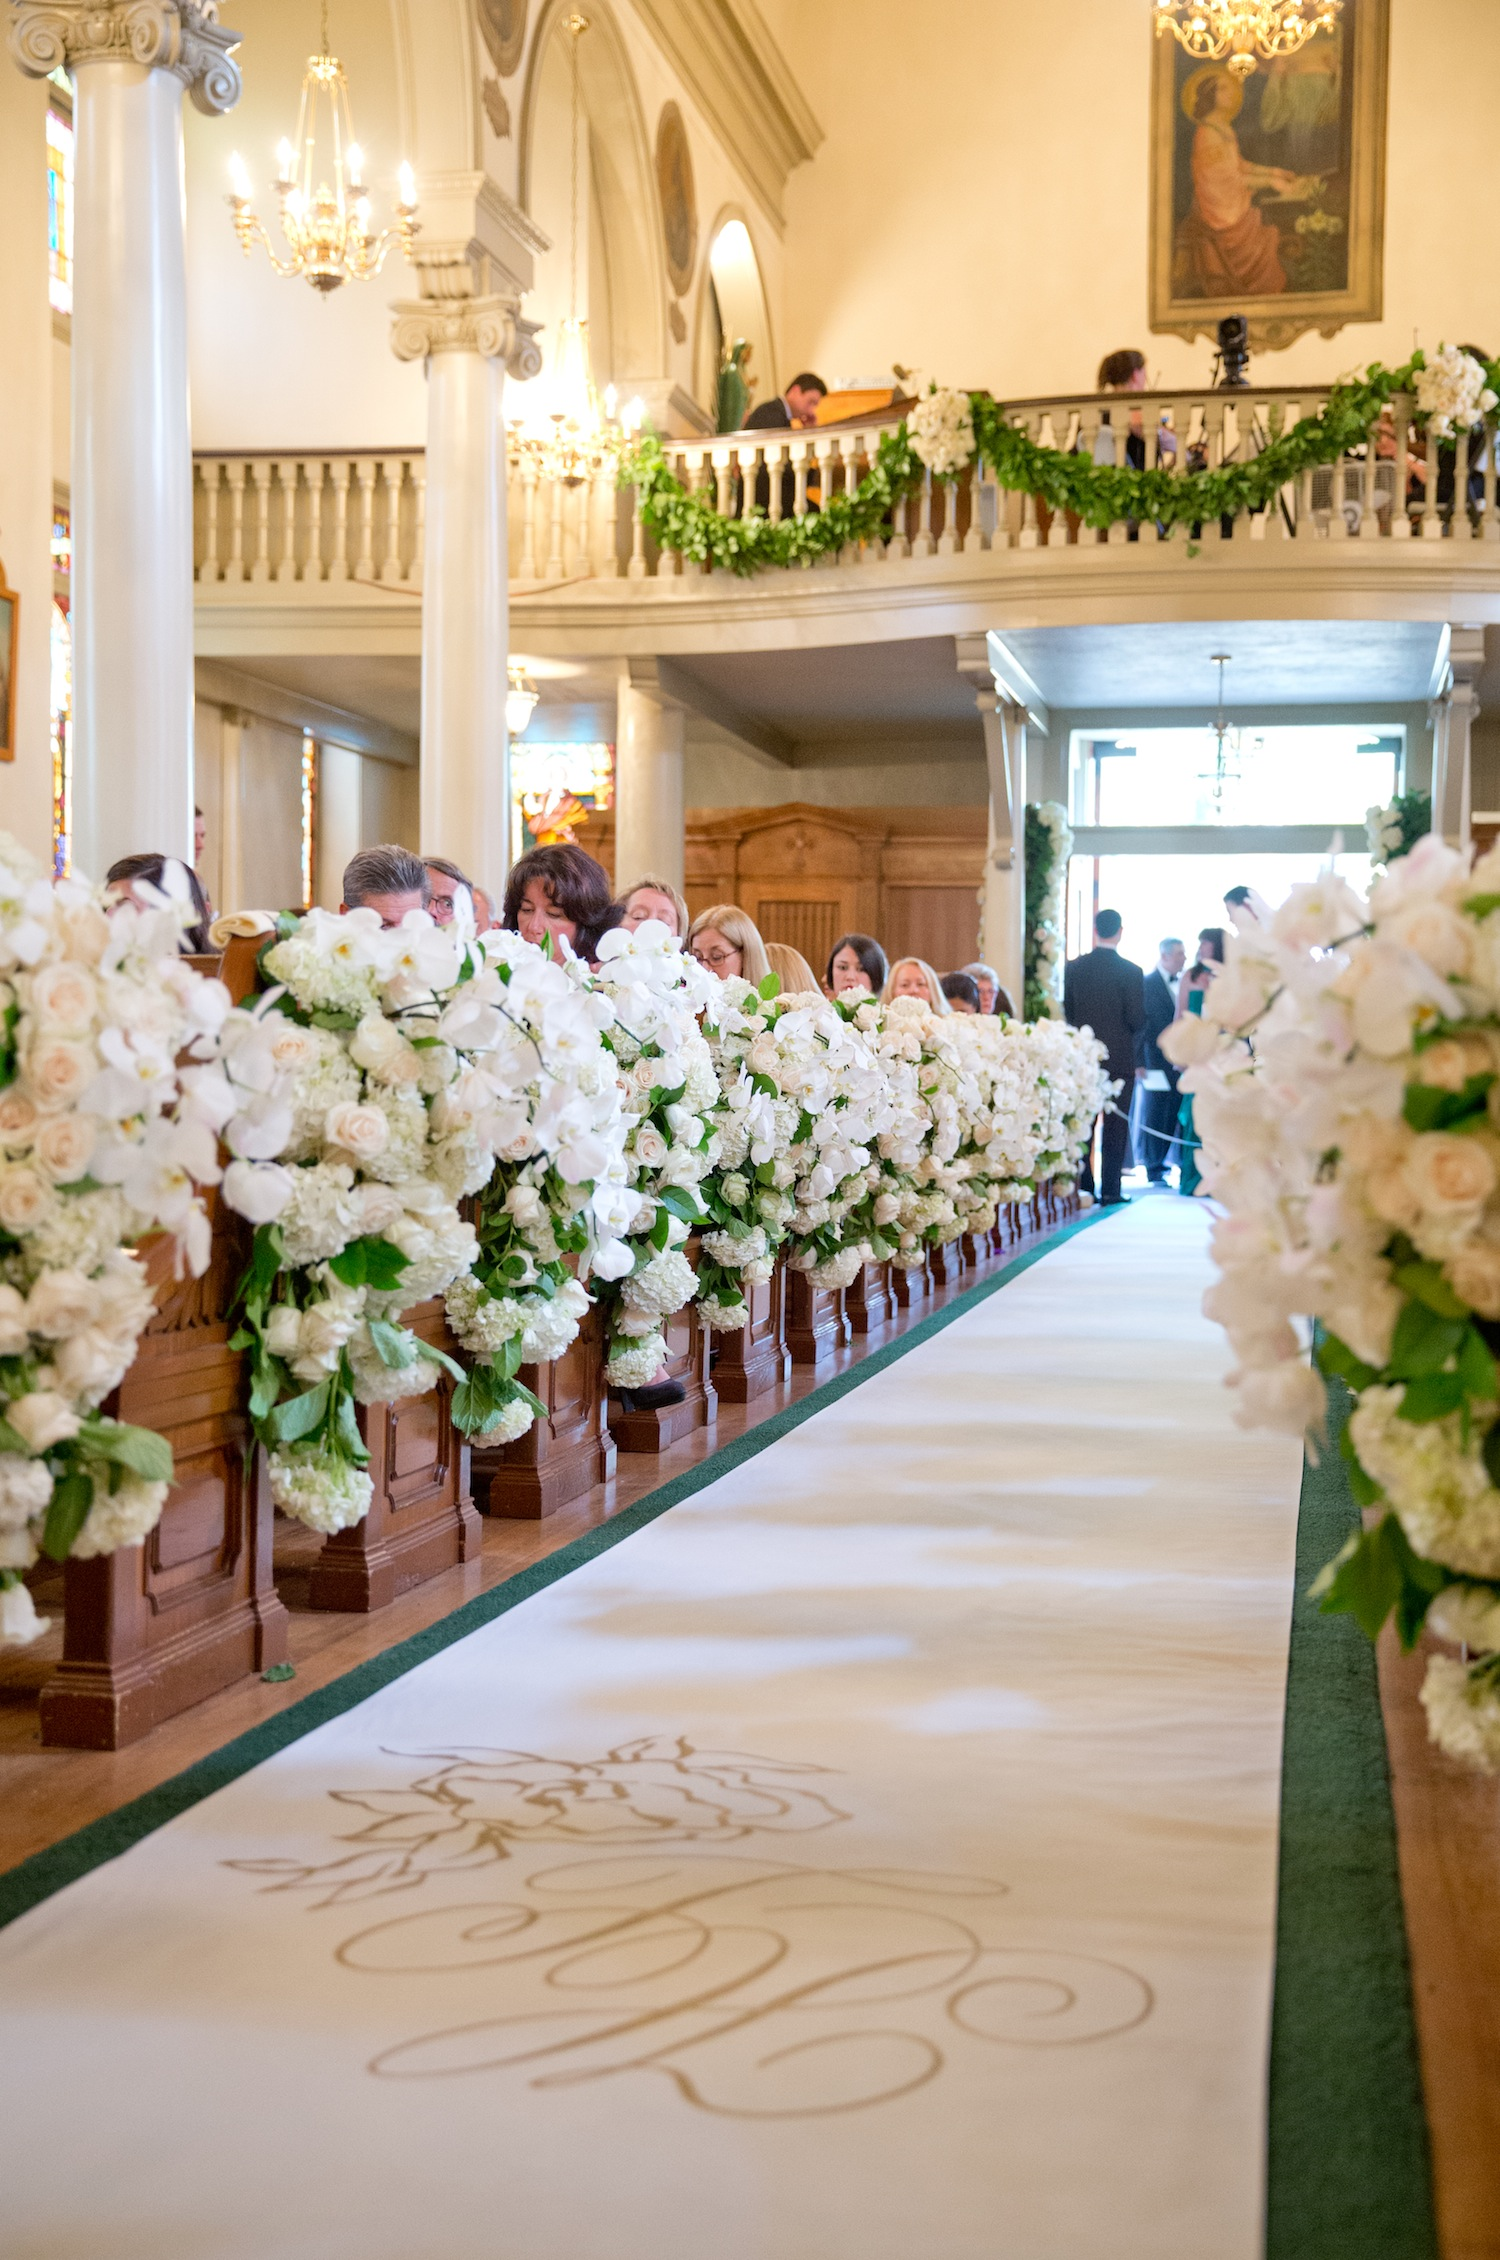 Catholic Wedding Help: Dress, flowers, money, and other Pictures of church wedding ceremony decorations